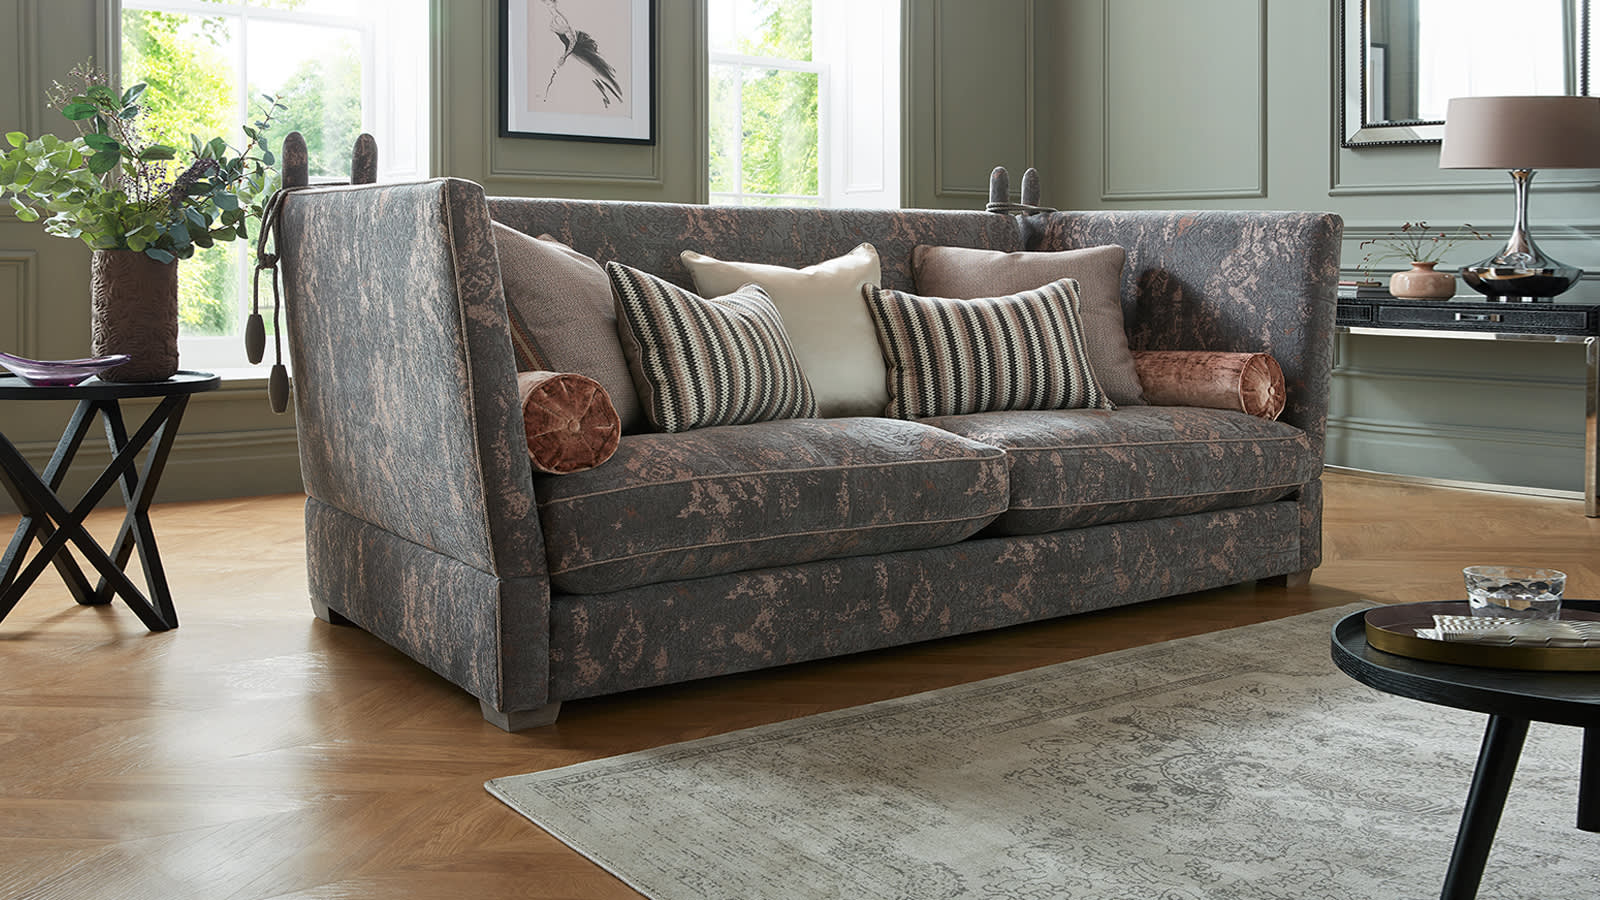 Sofology Beckett sofa